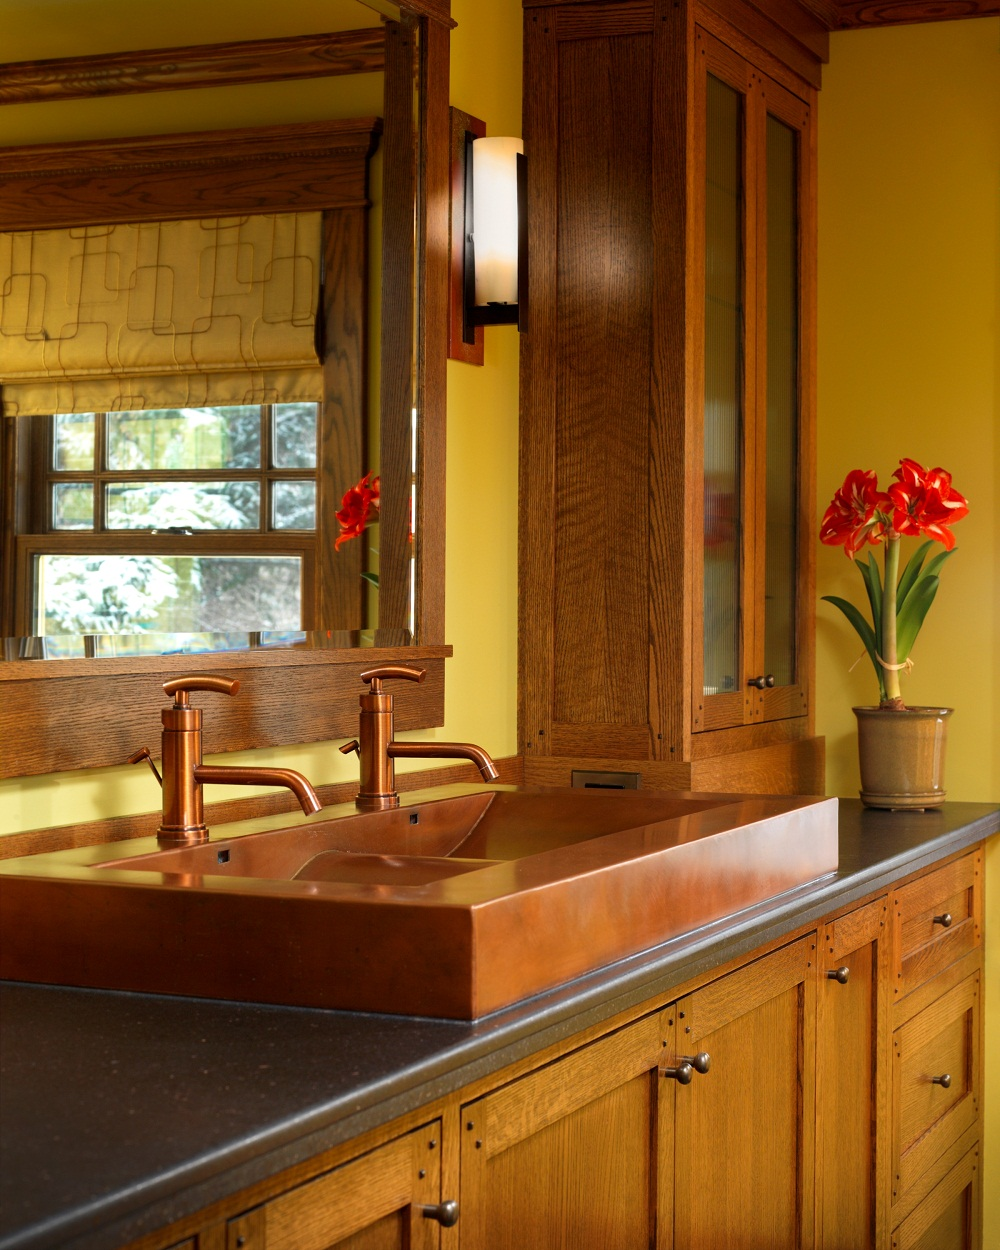 Trough Bathroom Sink With Two Faucets: Trough Sinks For Efficient Bathroom And Kitchen Ideas